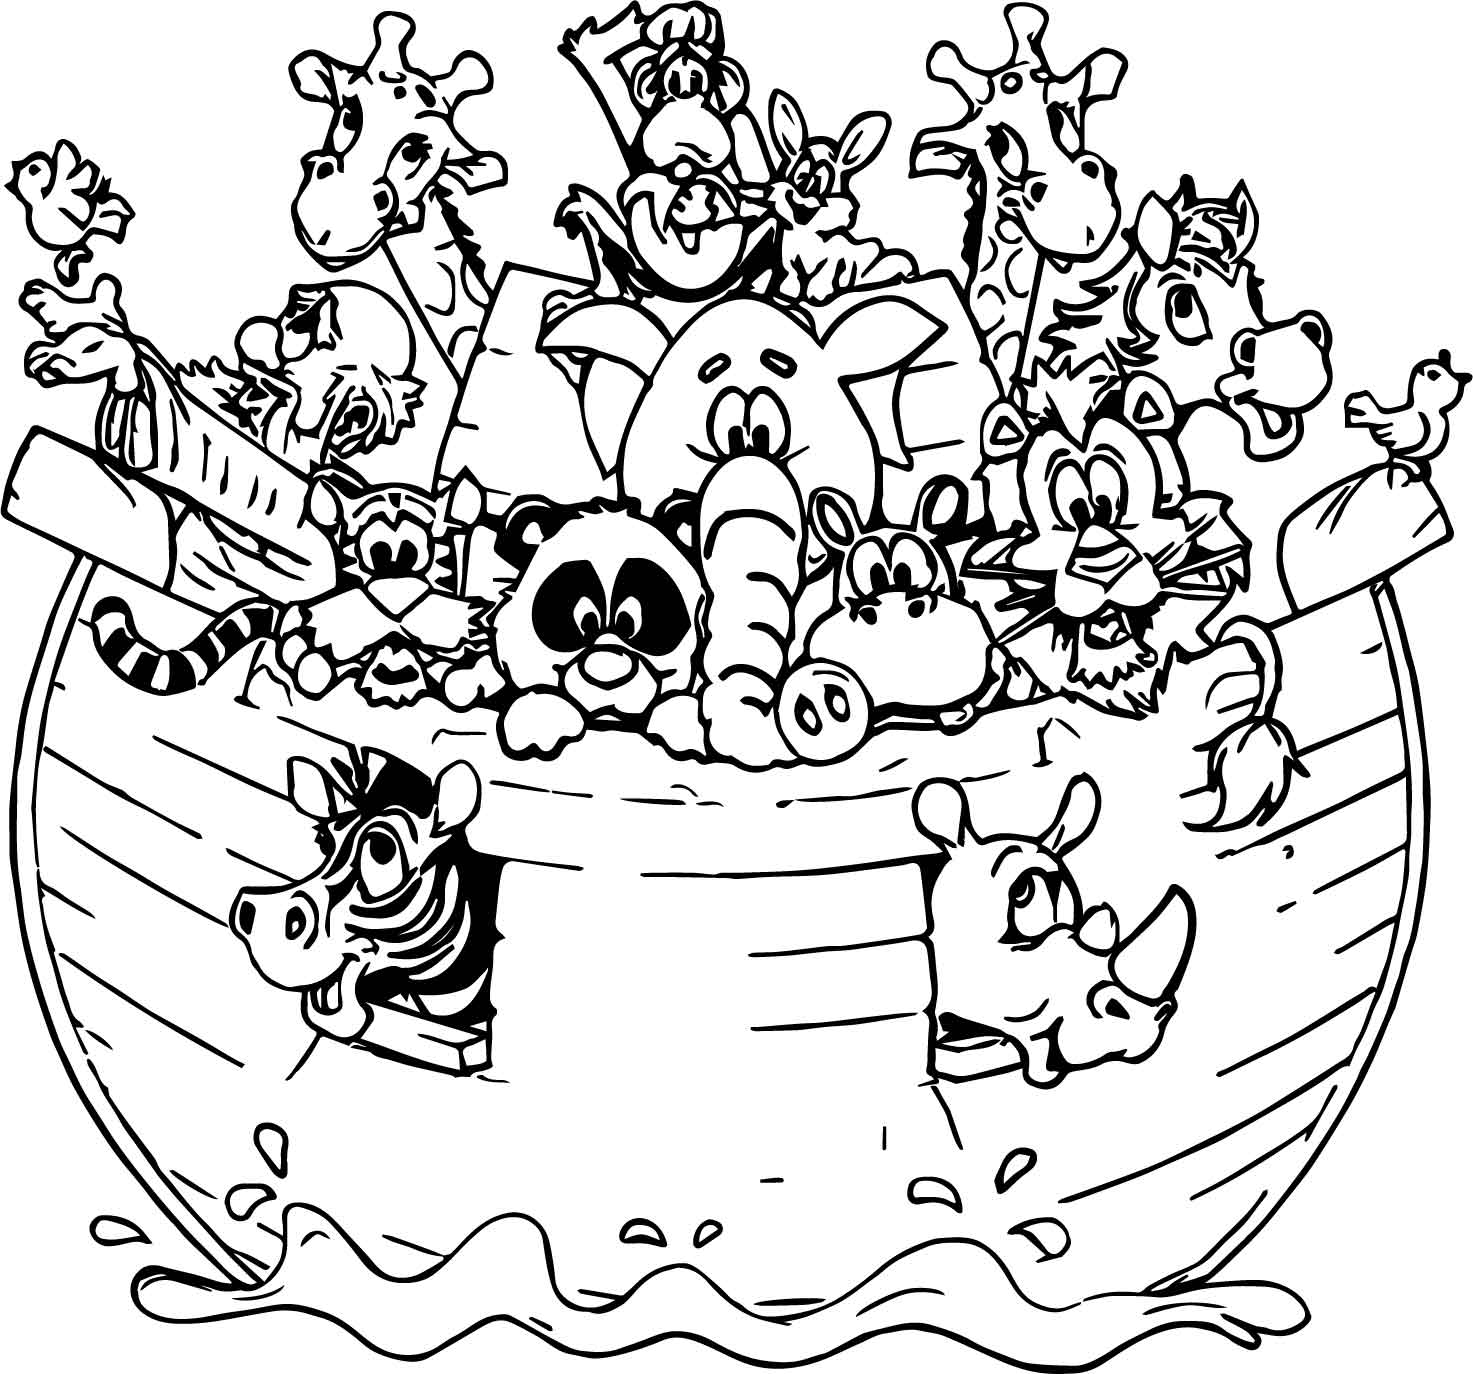 Noah And The Ark Coloring Pages At Getcolorings